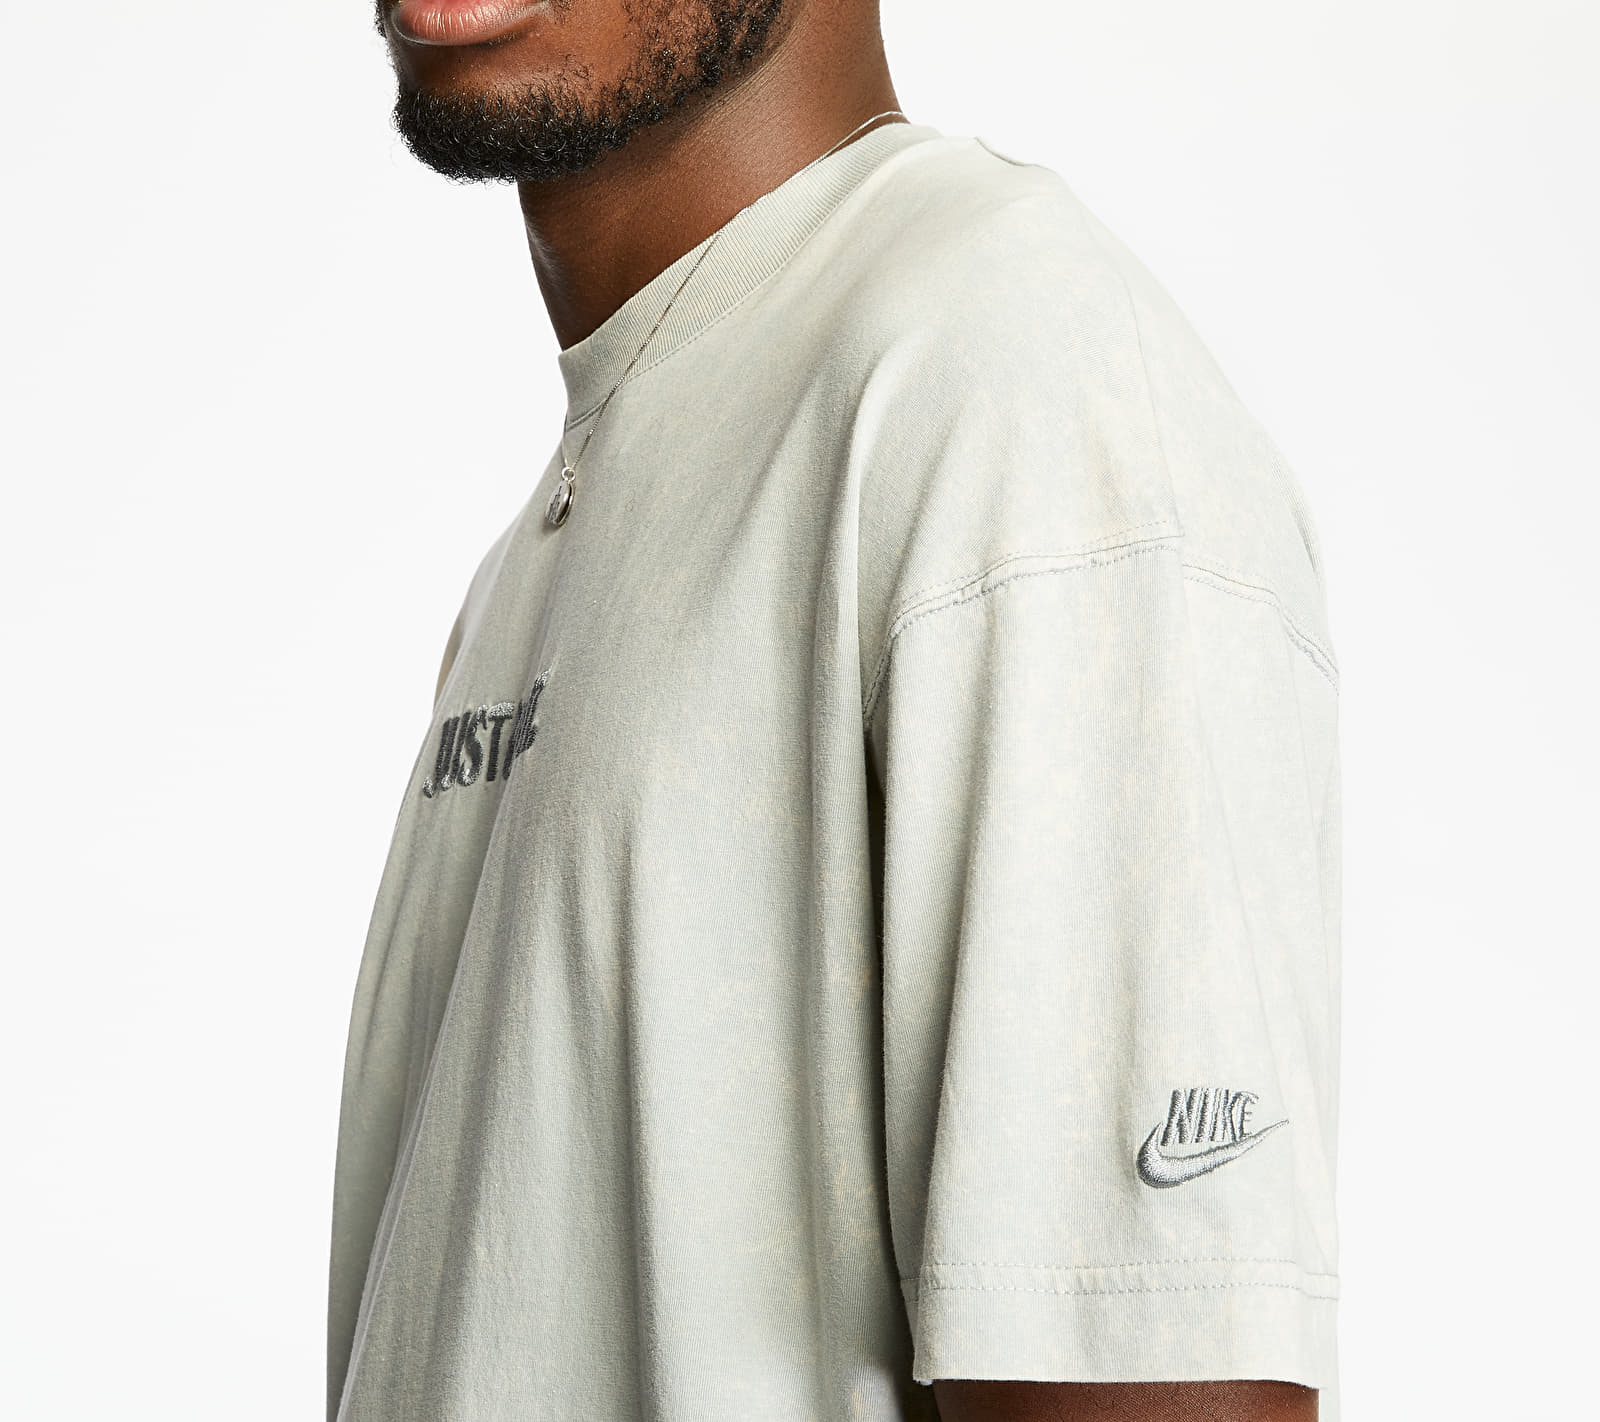 Nike Sportswear Just Do It Wash Tee Lt Smoke Grey/ Lt Smoke Grey, Gray